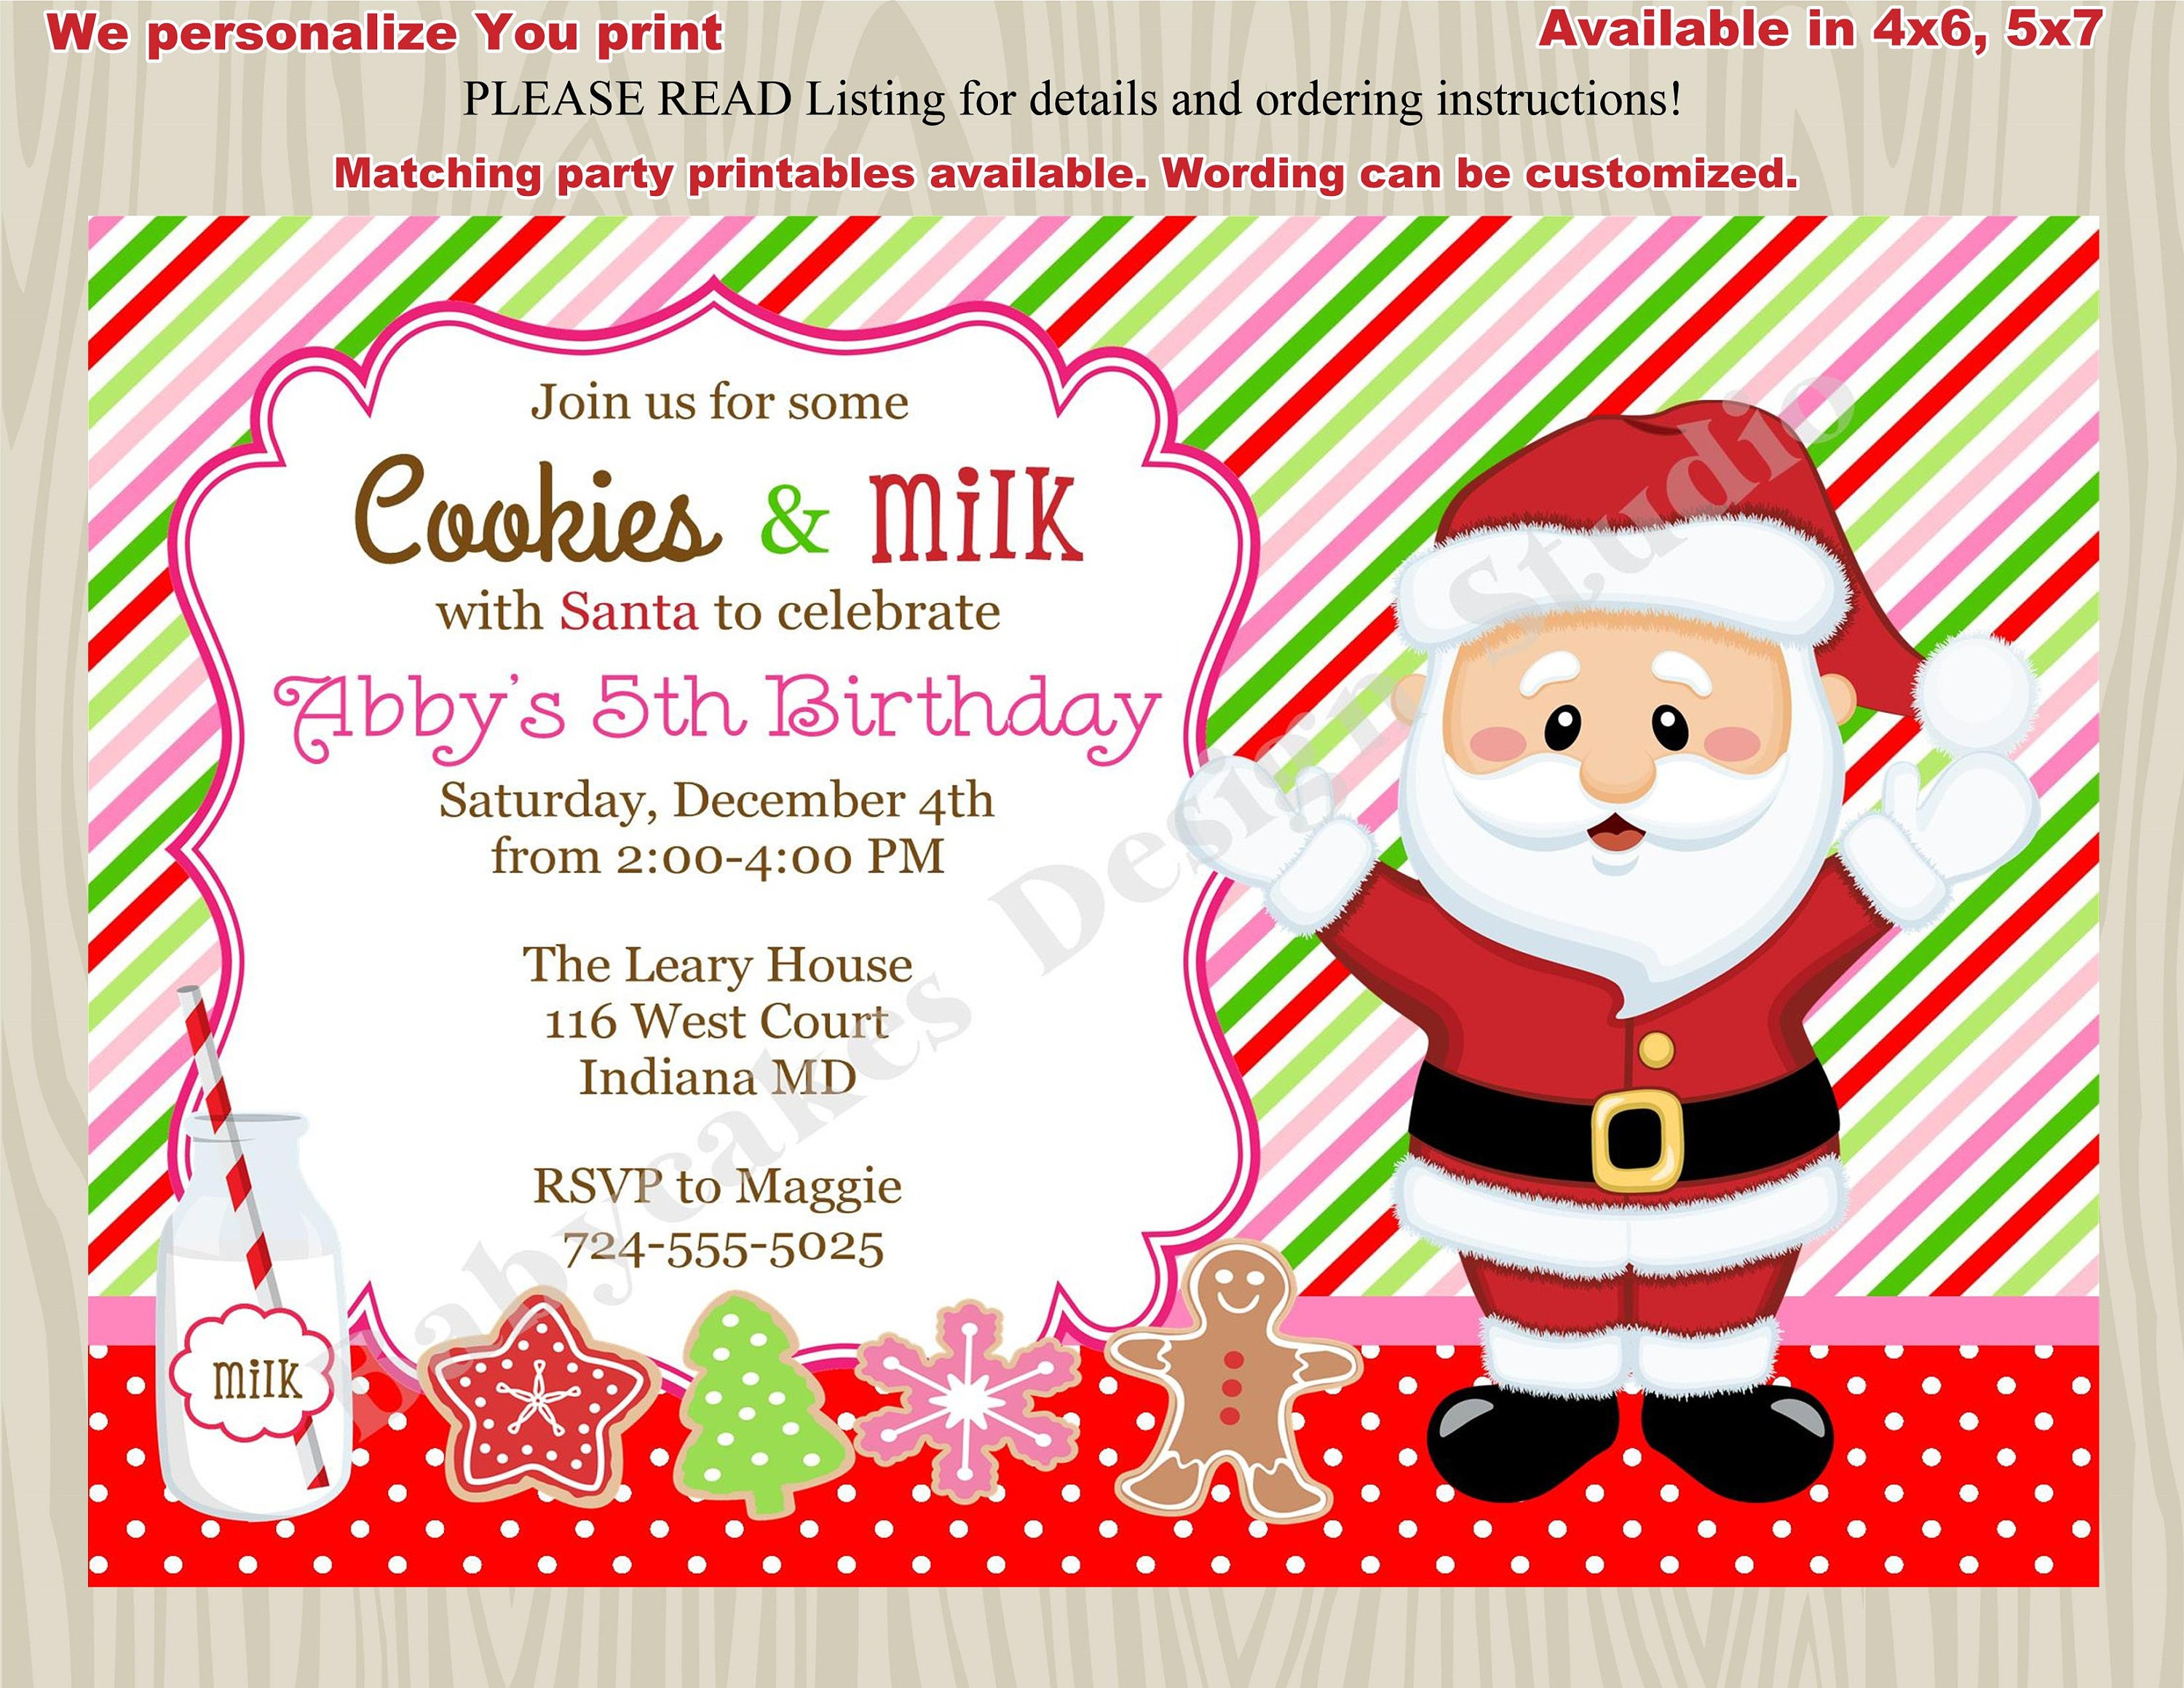 Cookies with Santa Invitations Milk and Cookies Birthday Party